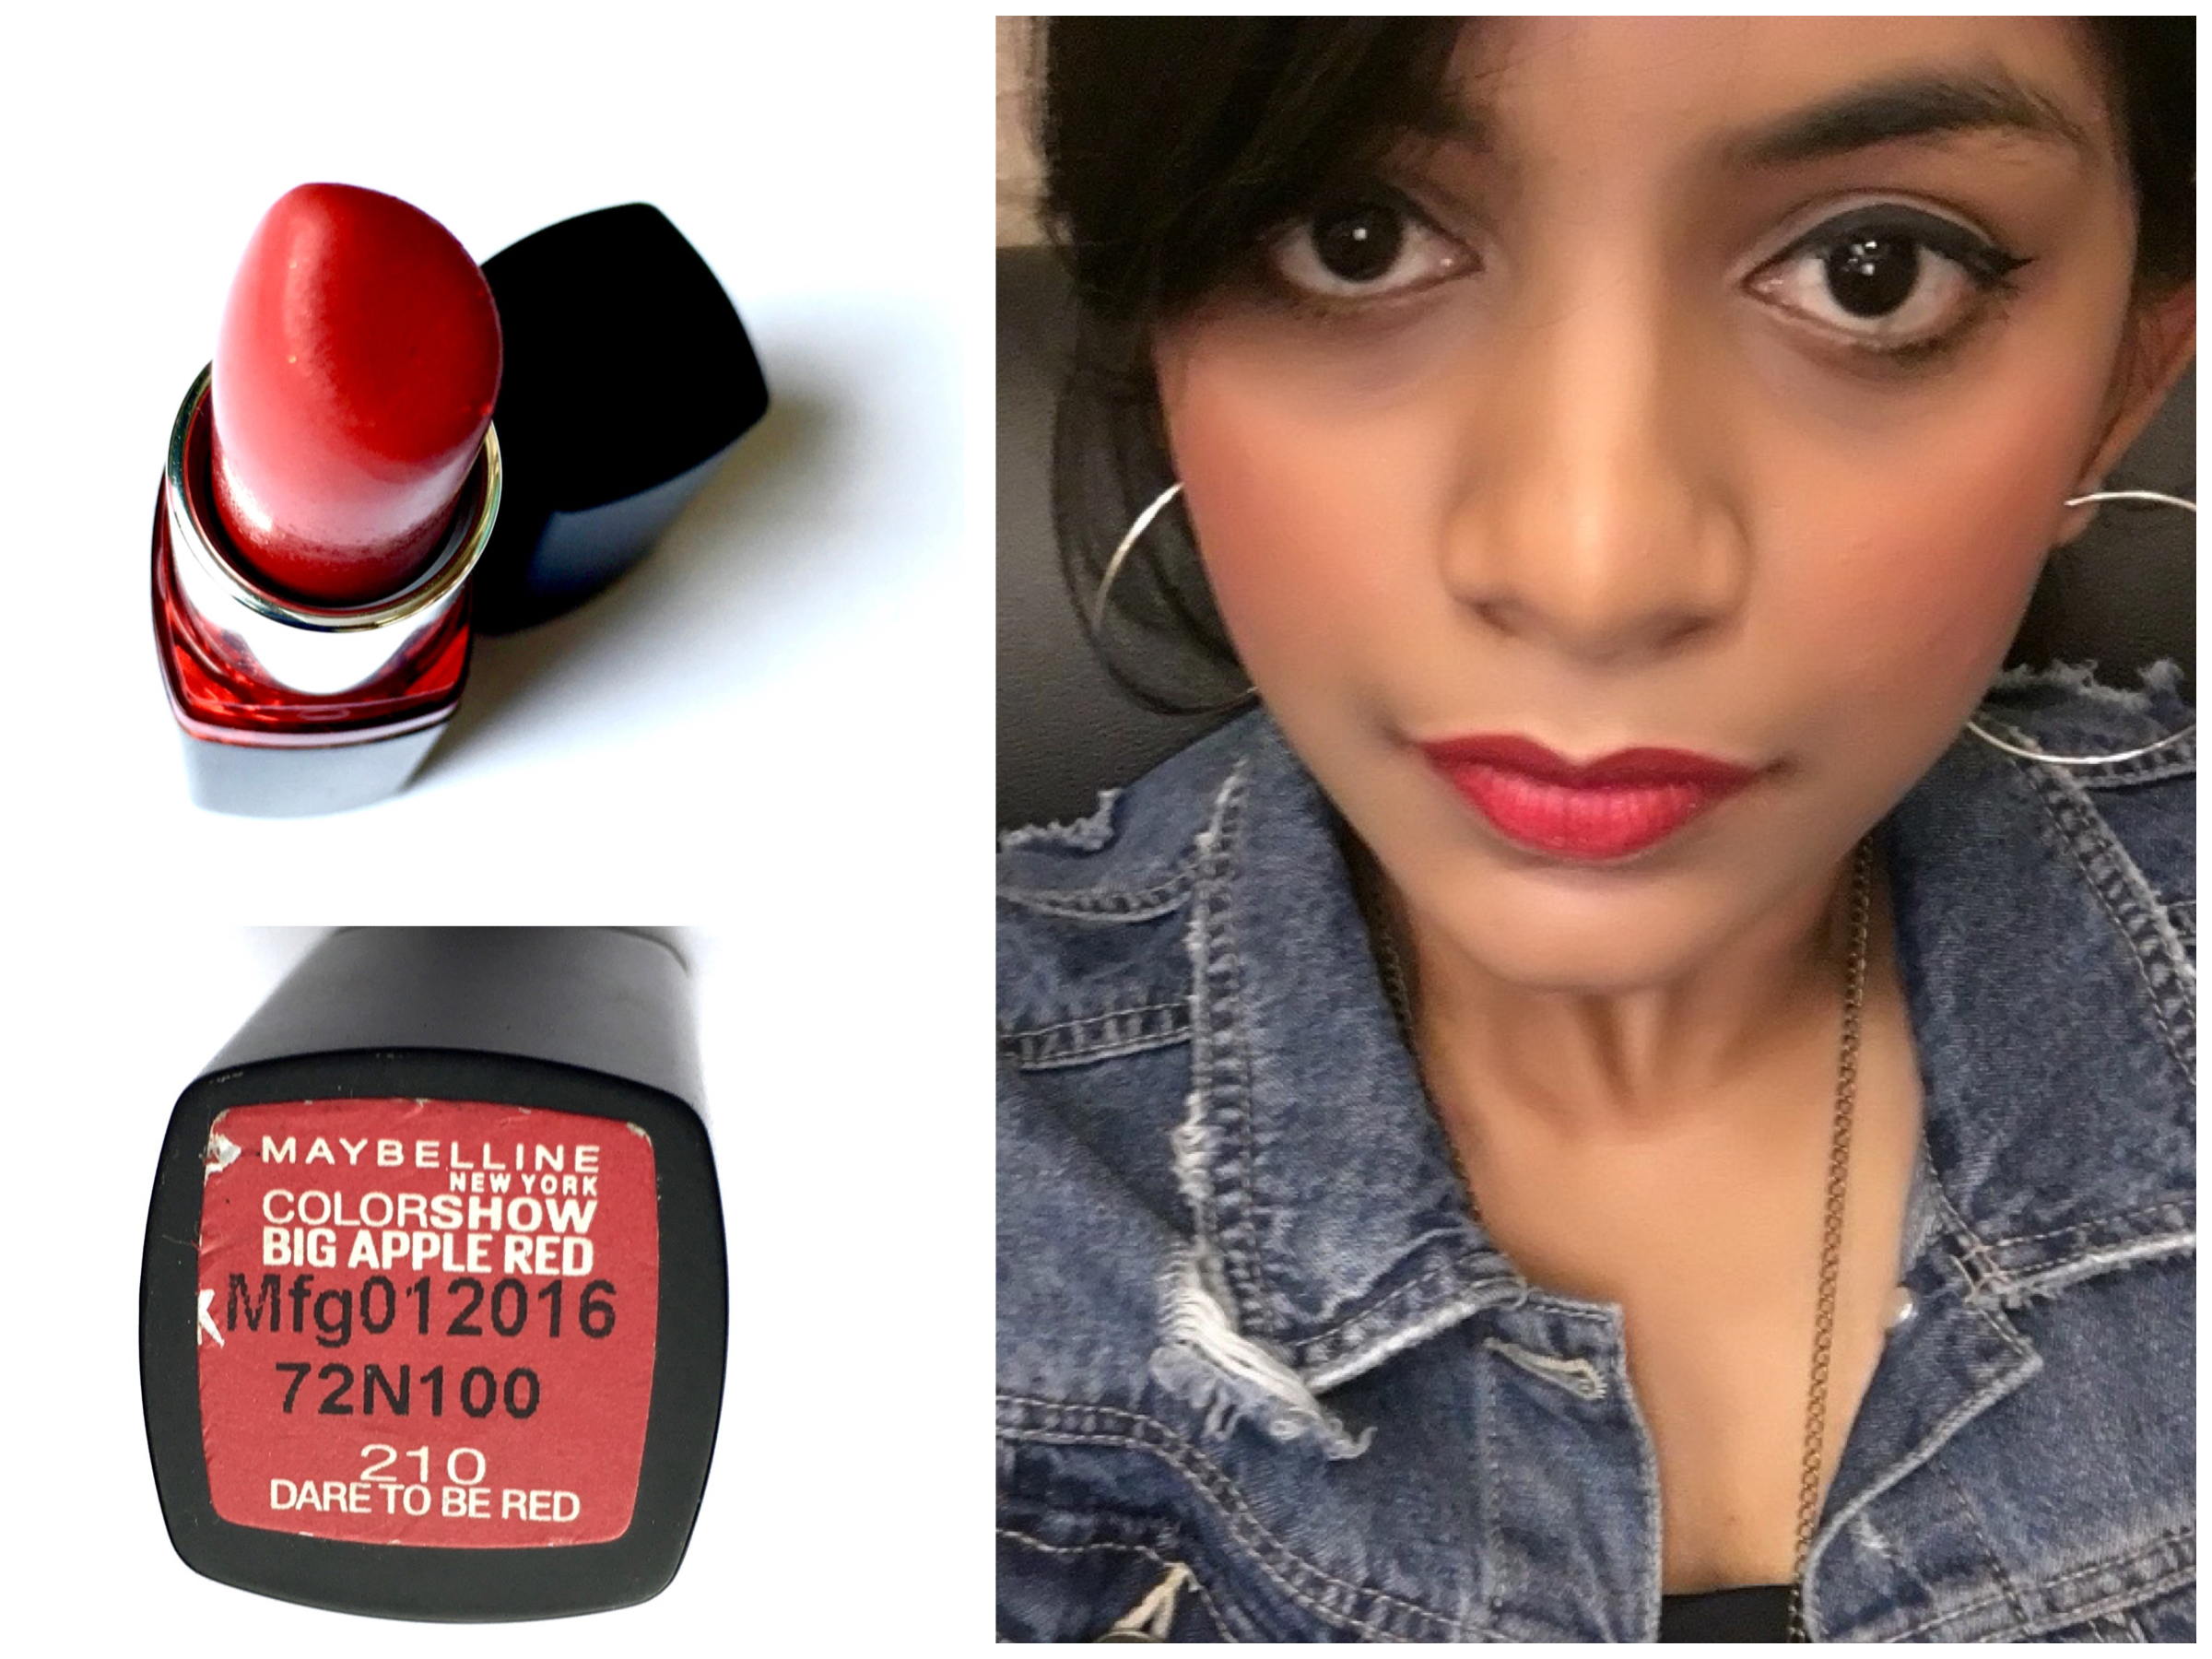 c1cd74654 Maybelline Color Show Big Apple Red Lipstick Dare To Be Red M 210 Review